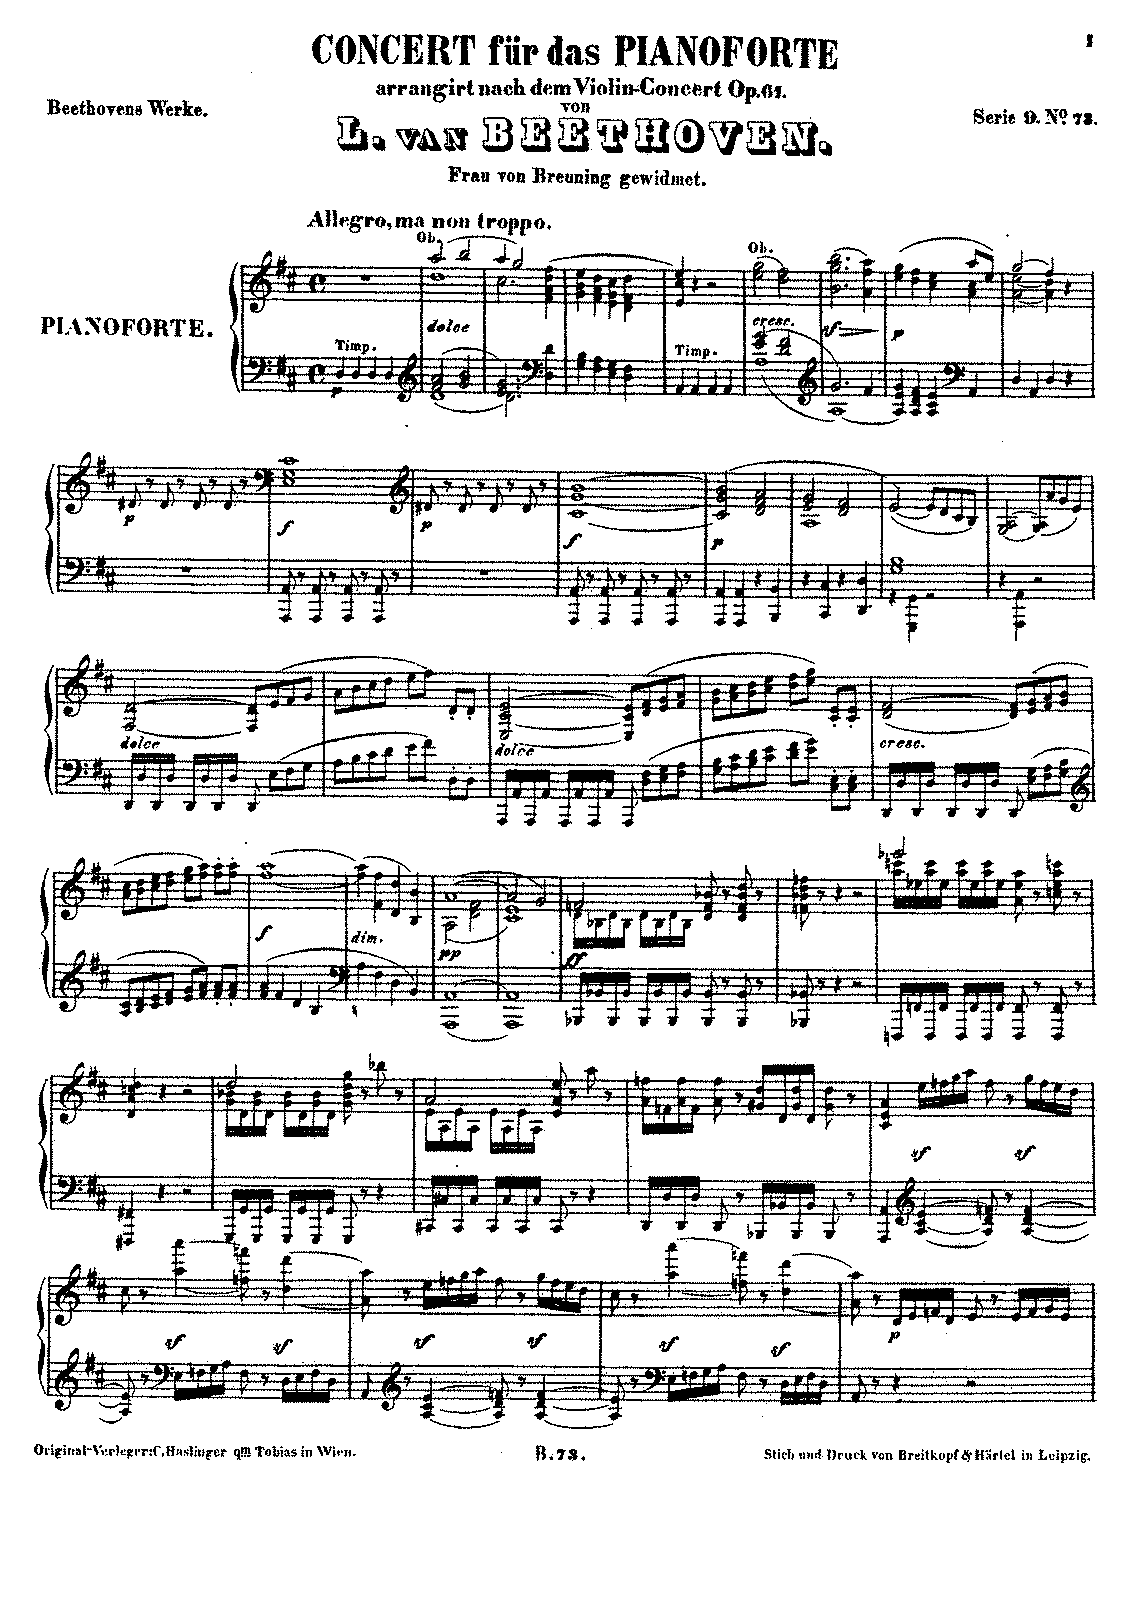 PMLP114616-Beethoven arr Violin Concerto for Piano Op61a.pdf